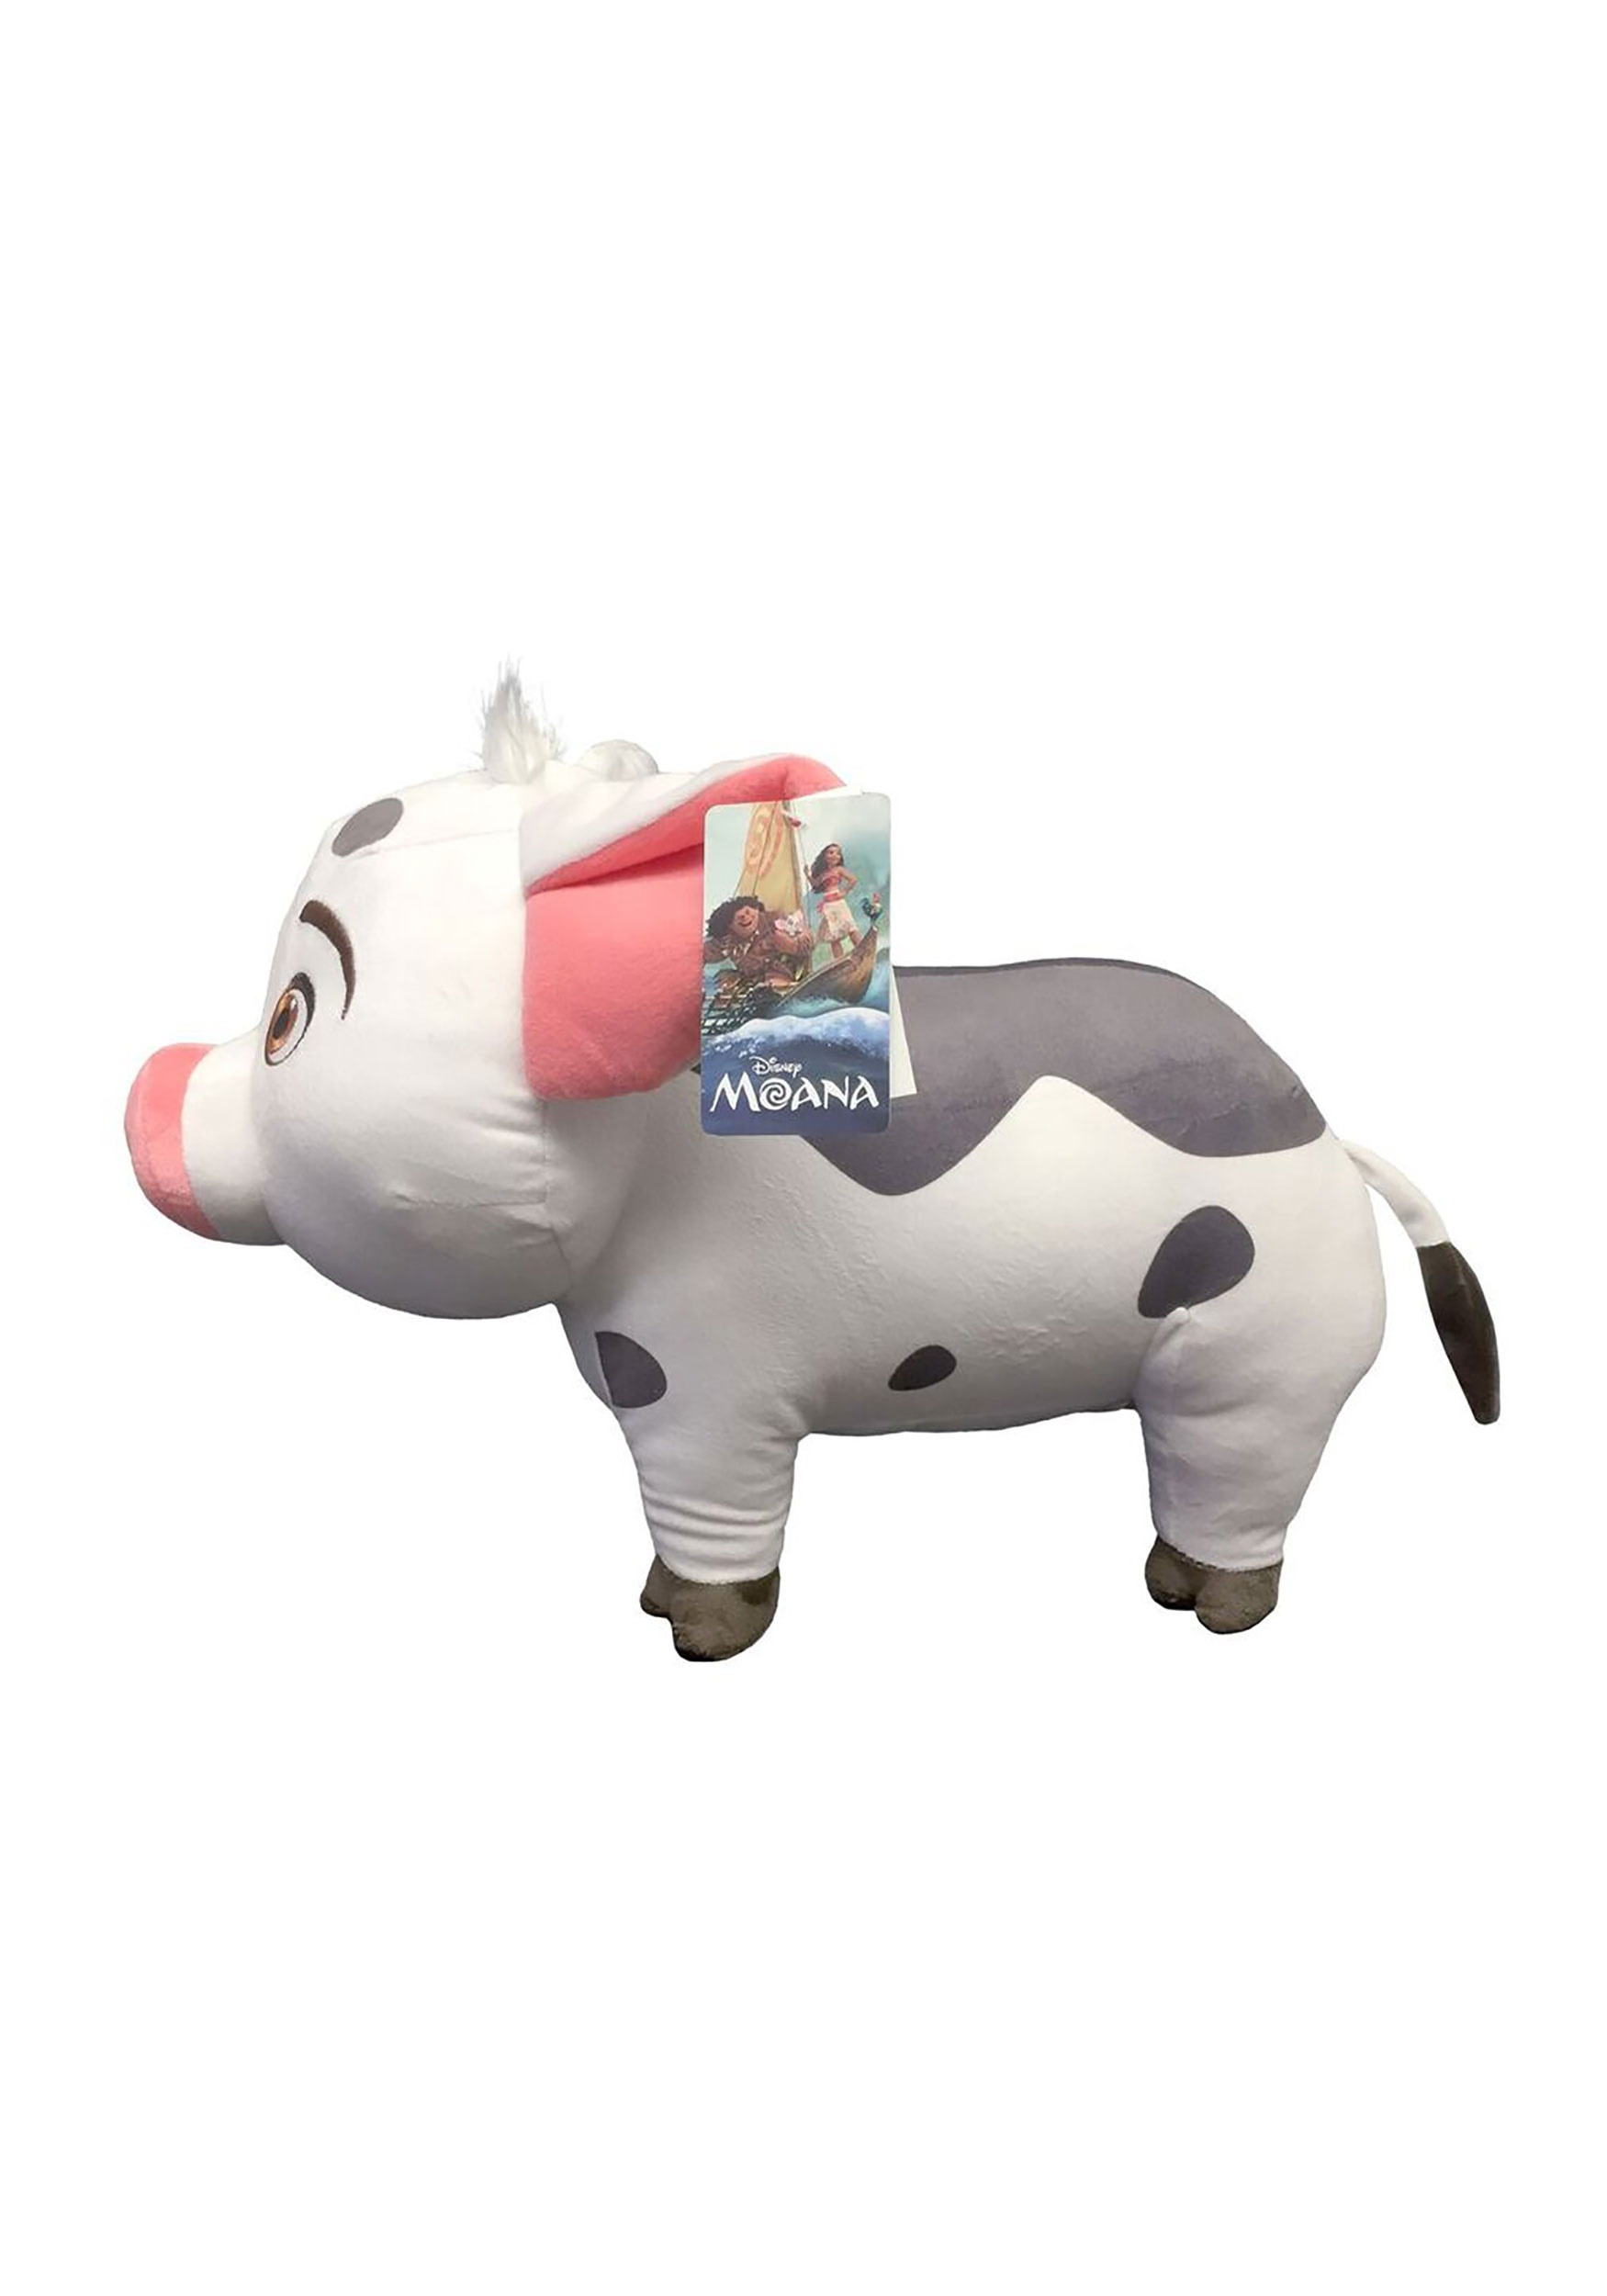 moana pua pig pillow buddy